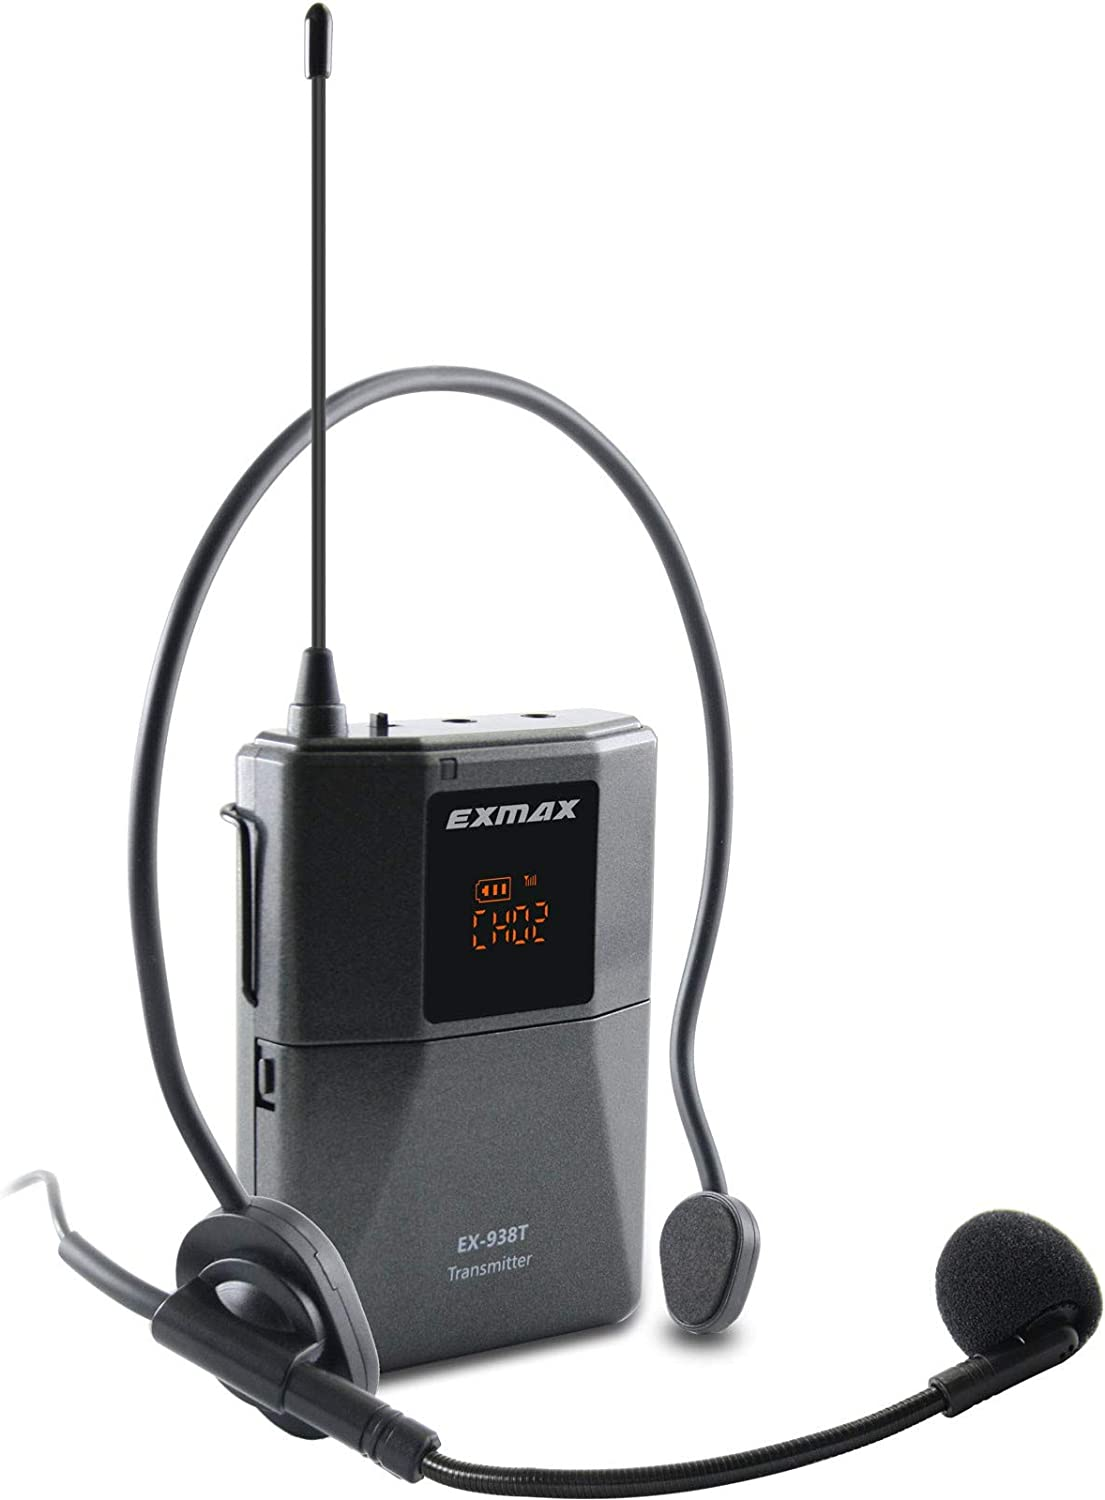 EXMAX Finally popular brand EX-938 Wireless Headset Microphone Inter System Guide We OFFer at cheap prices Tour